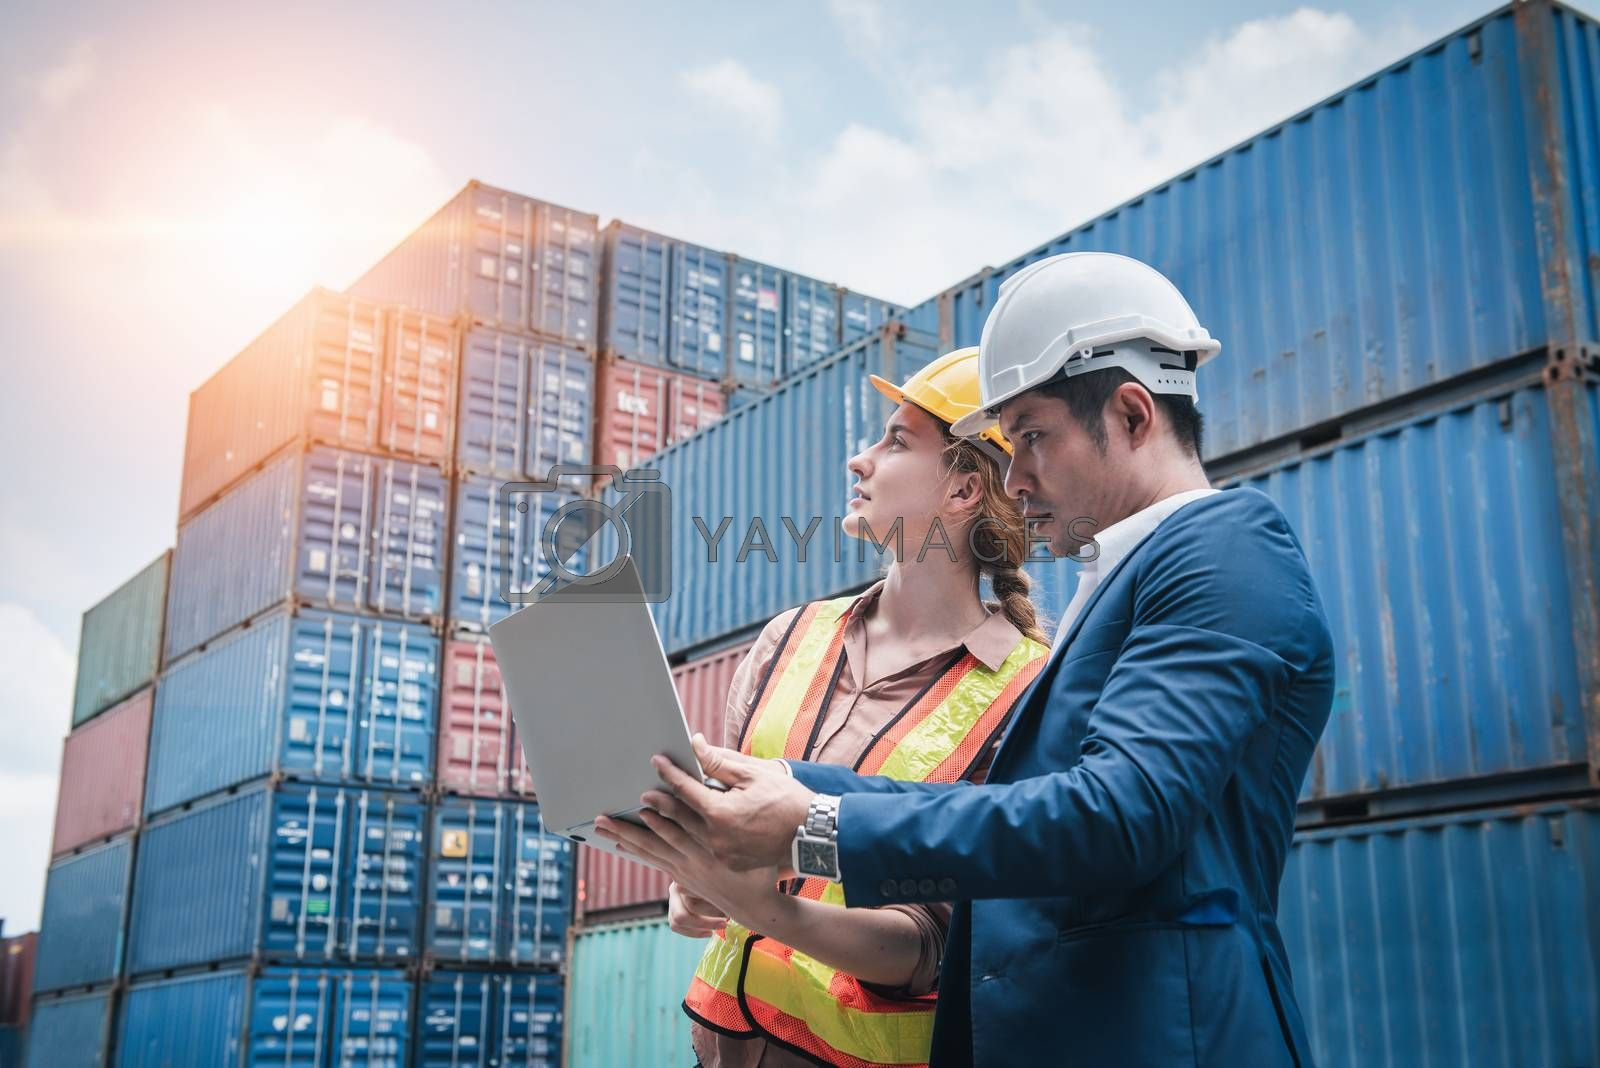 Business Team Container Cargo Shipping Control Inspection Loading Dock and Management Import/Export Freight at Port Ship Yard. Manager and Foreman Teamwork Inspecting Containers Shipment Warehouse.